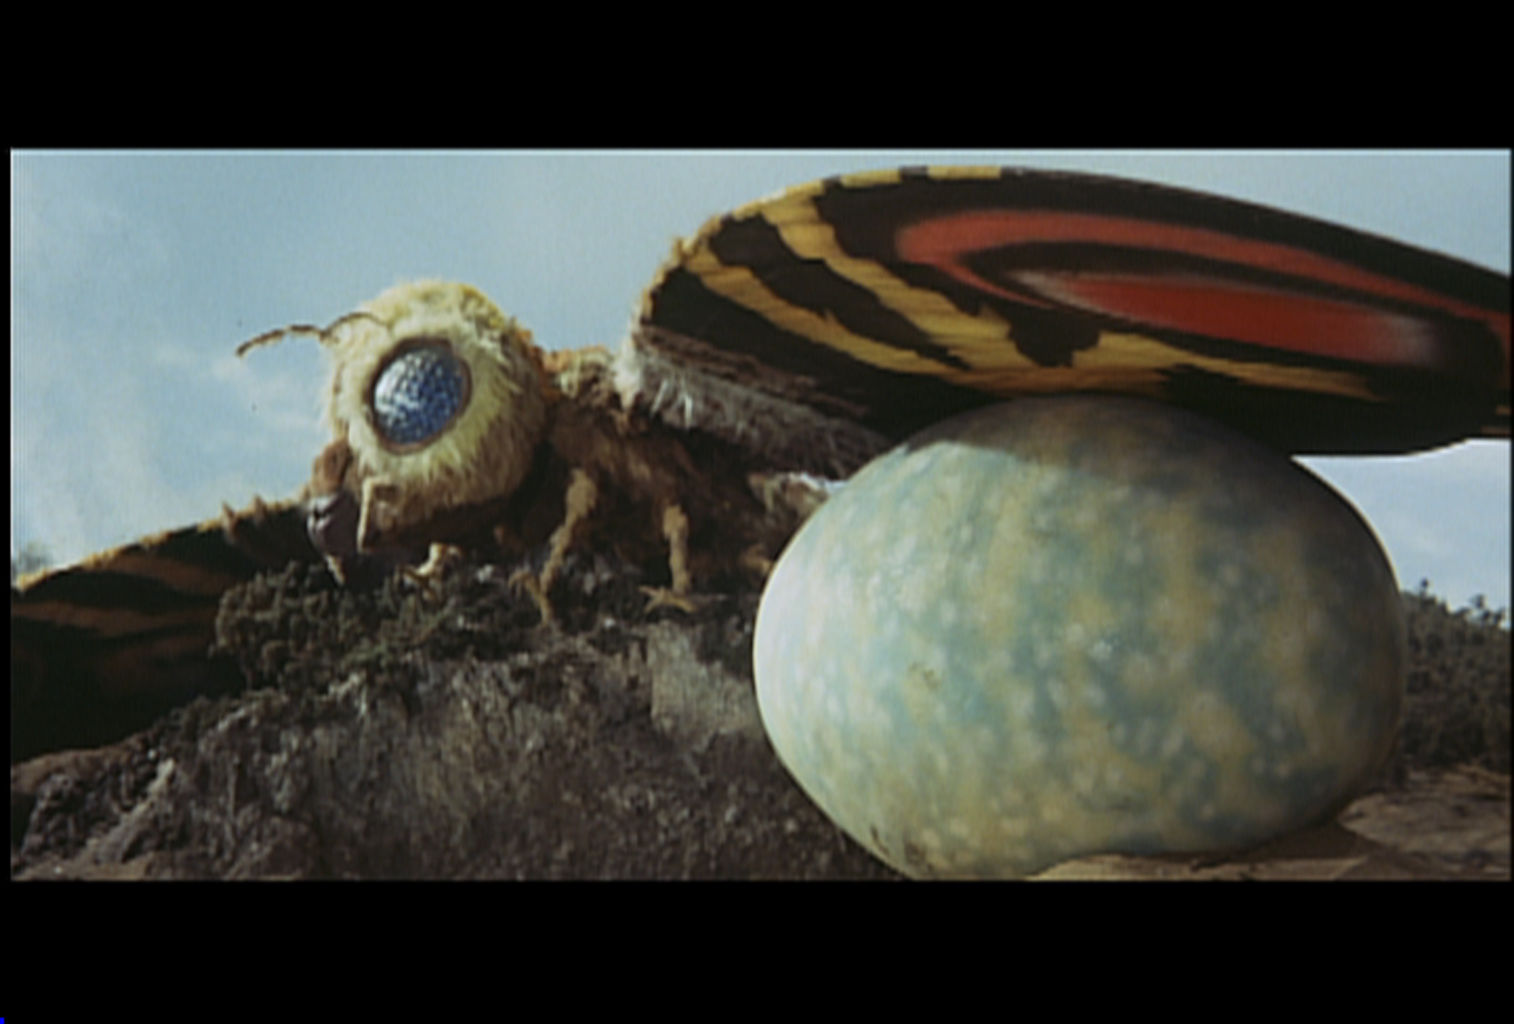 The newly hatched Mothra caterpillars head for battle.